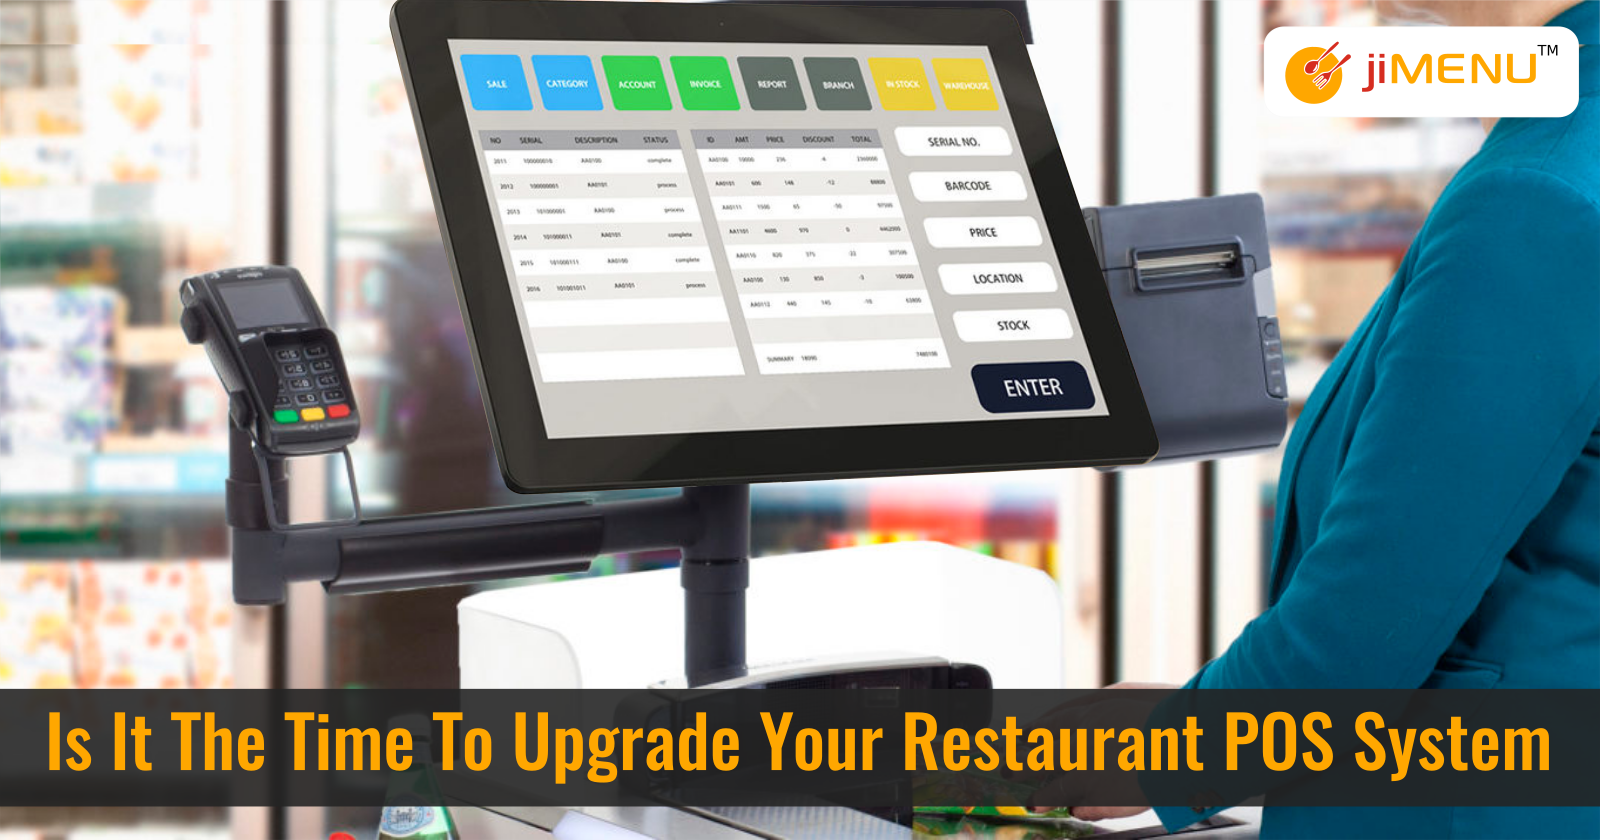 Is It The Time To Upgrade Your Restaurant POS System